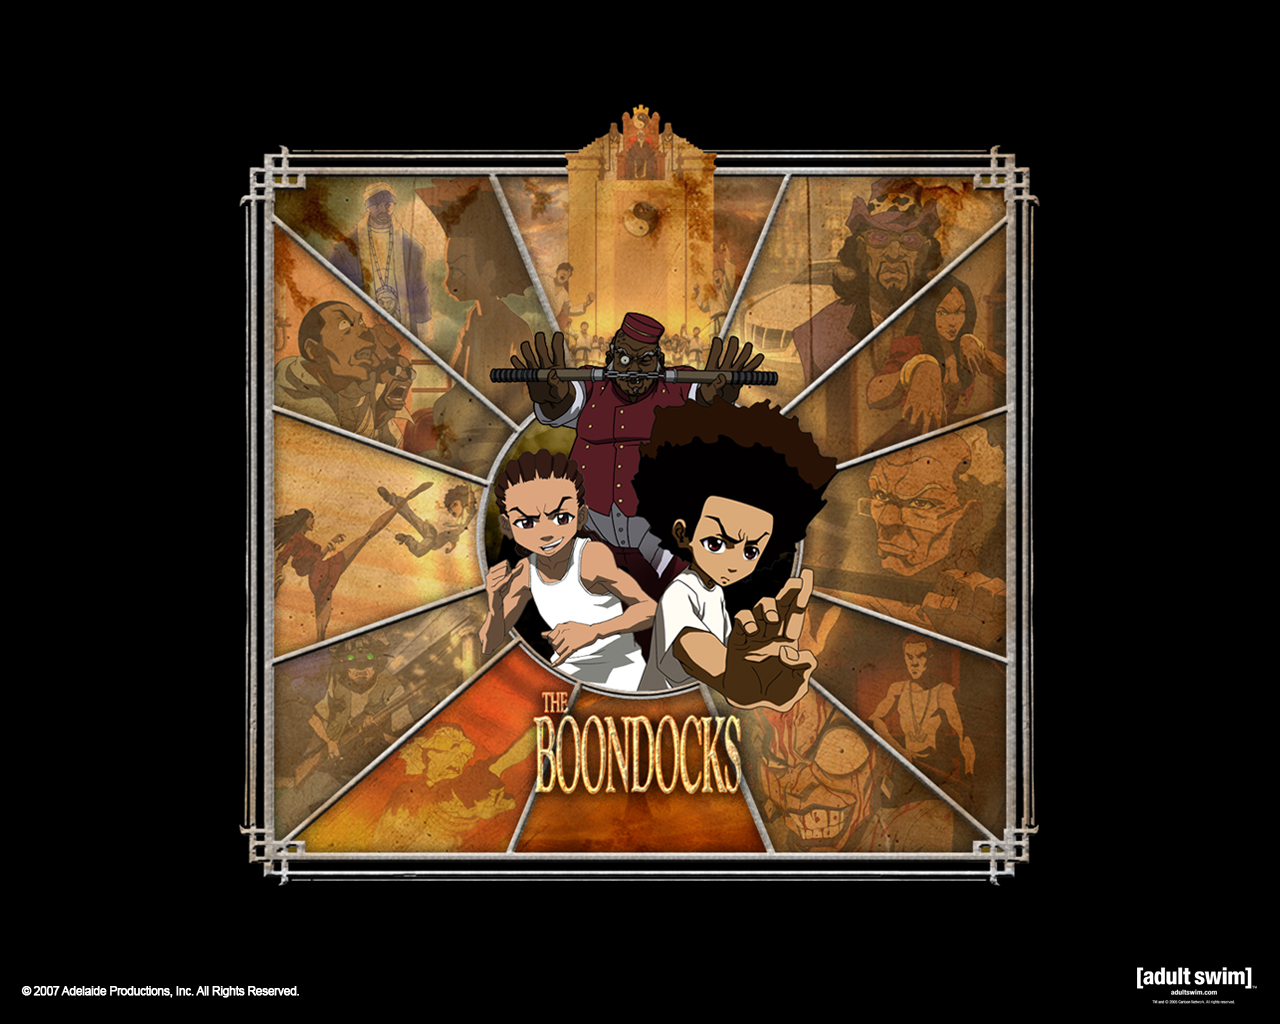 Download The Boondocks Desktop Wallpapers For Hd Widescreen